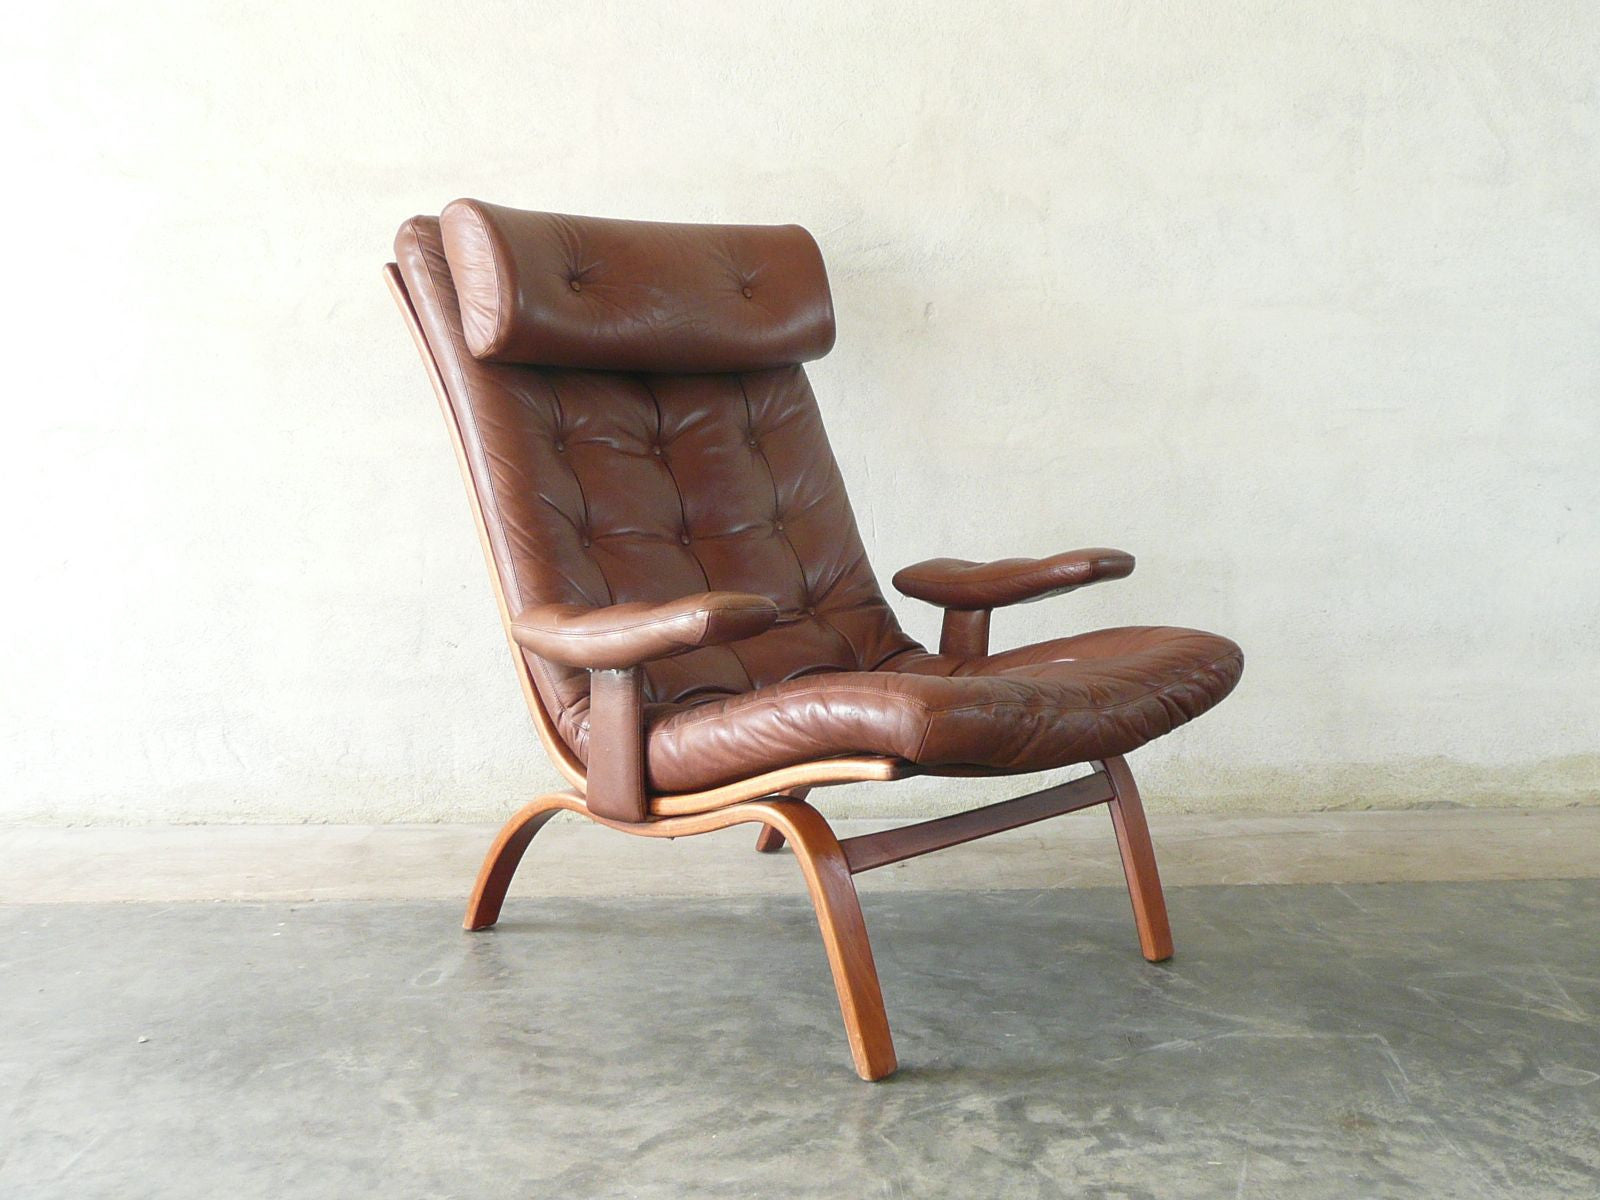 Highback lounge chair by Gothe